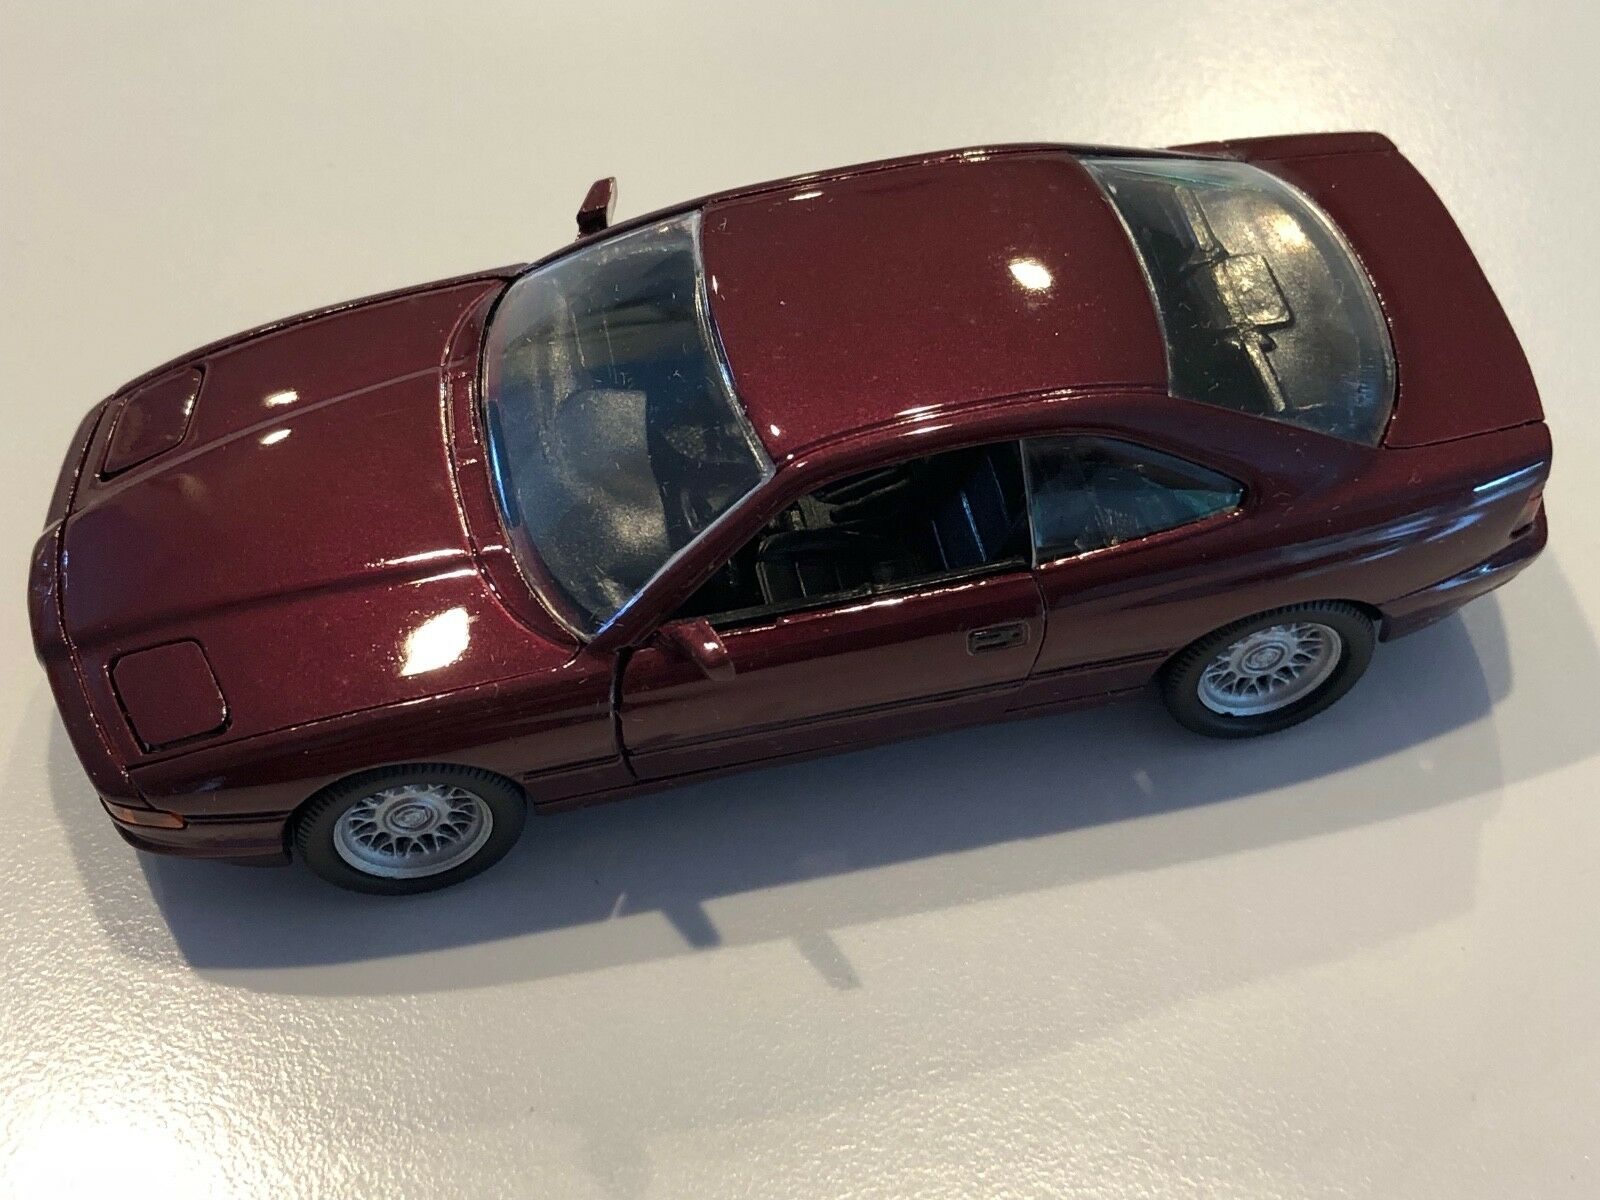 BMW 850i E31 Amethyst Metallic 1:43 scale diecast model   82 22 9 417 657